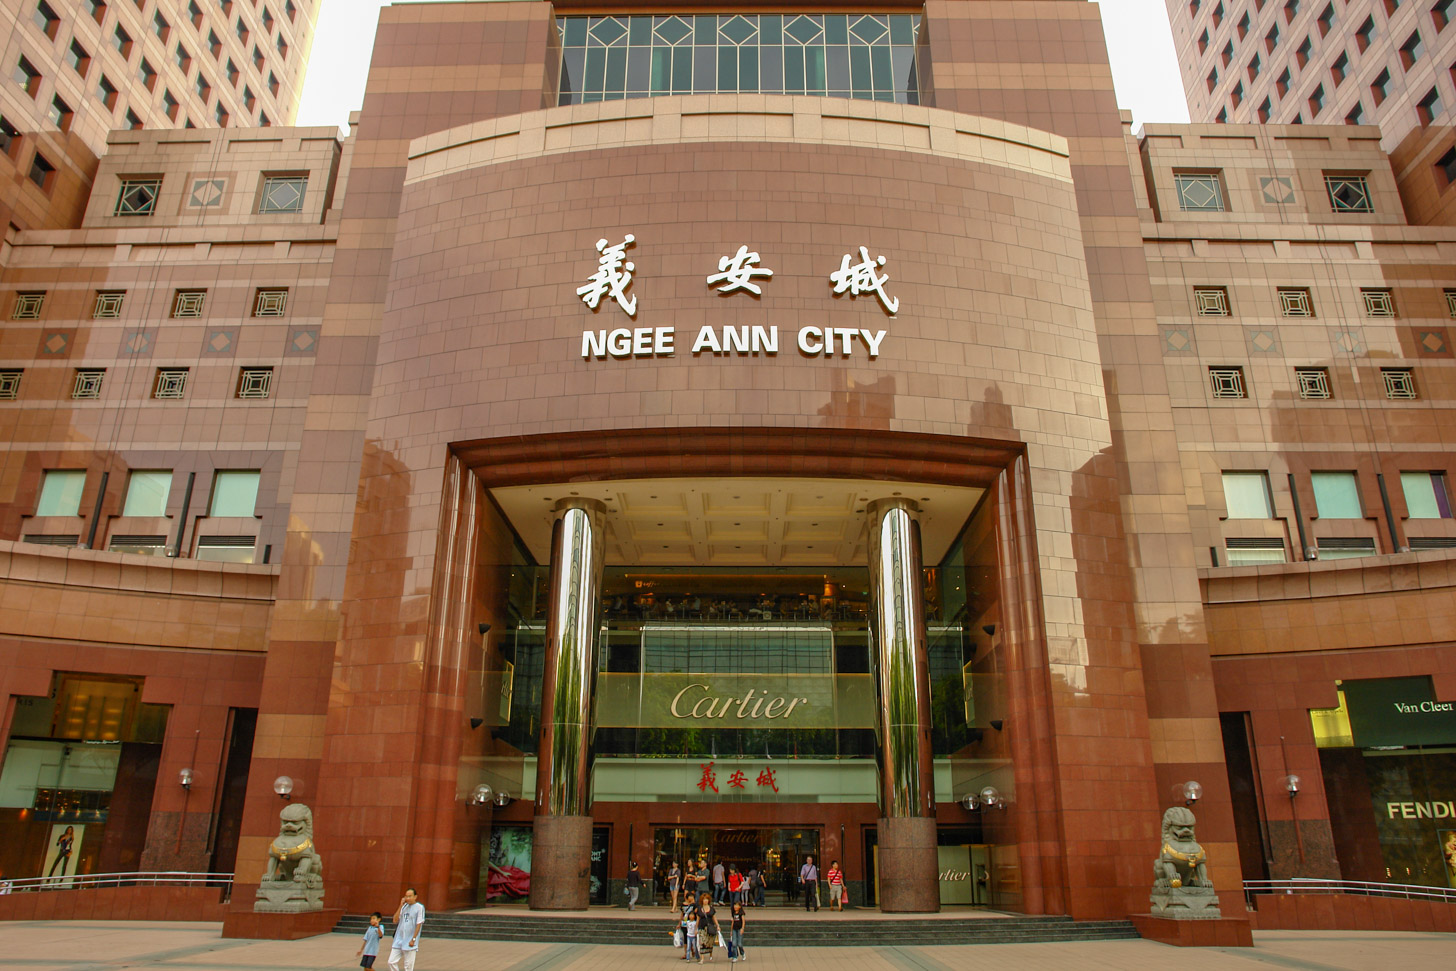 De Ngee Ann City shopping mall